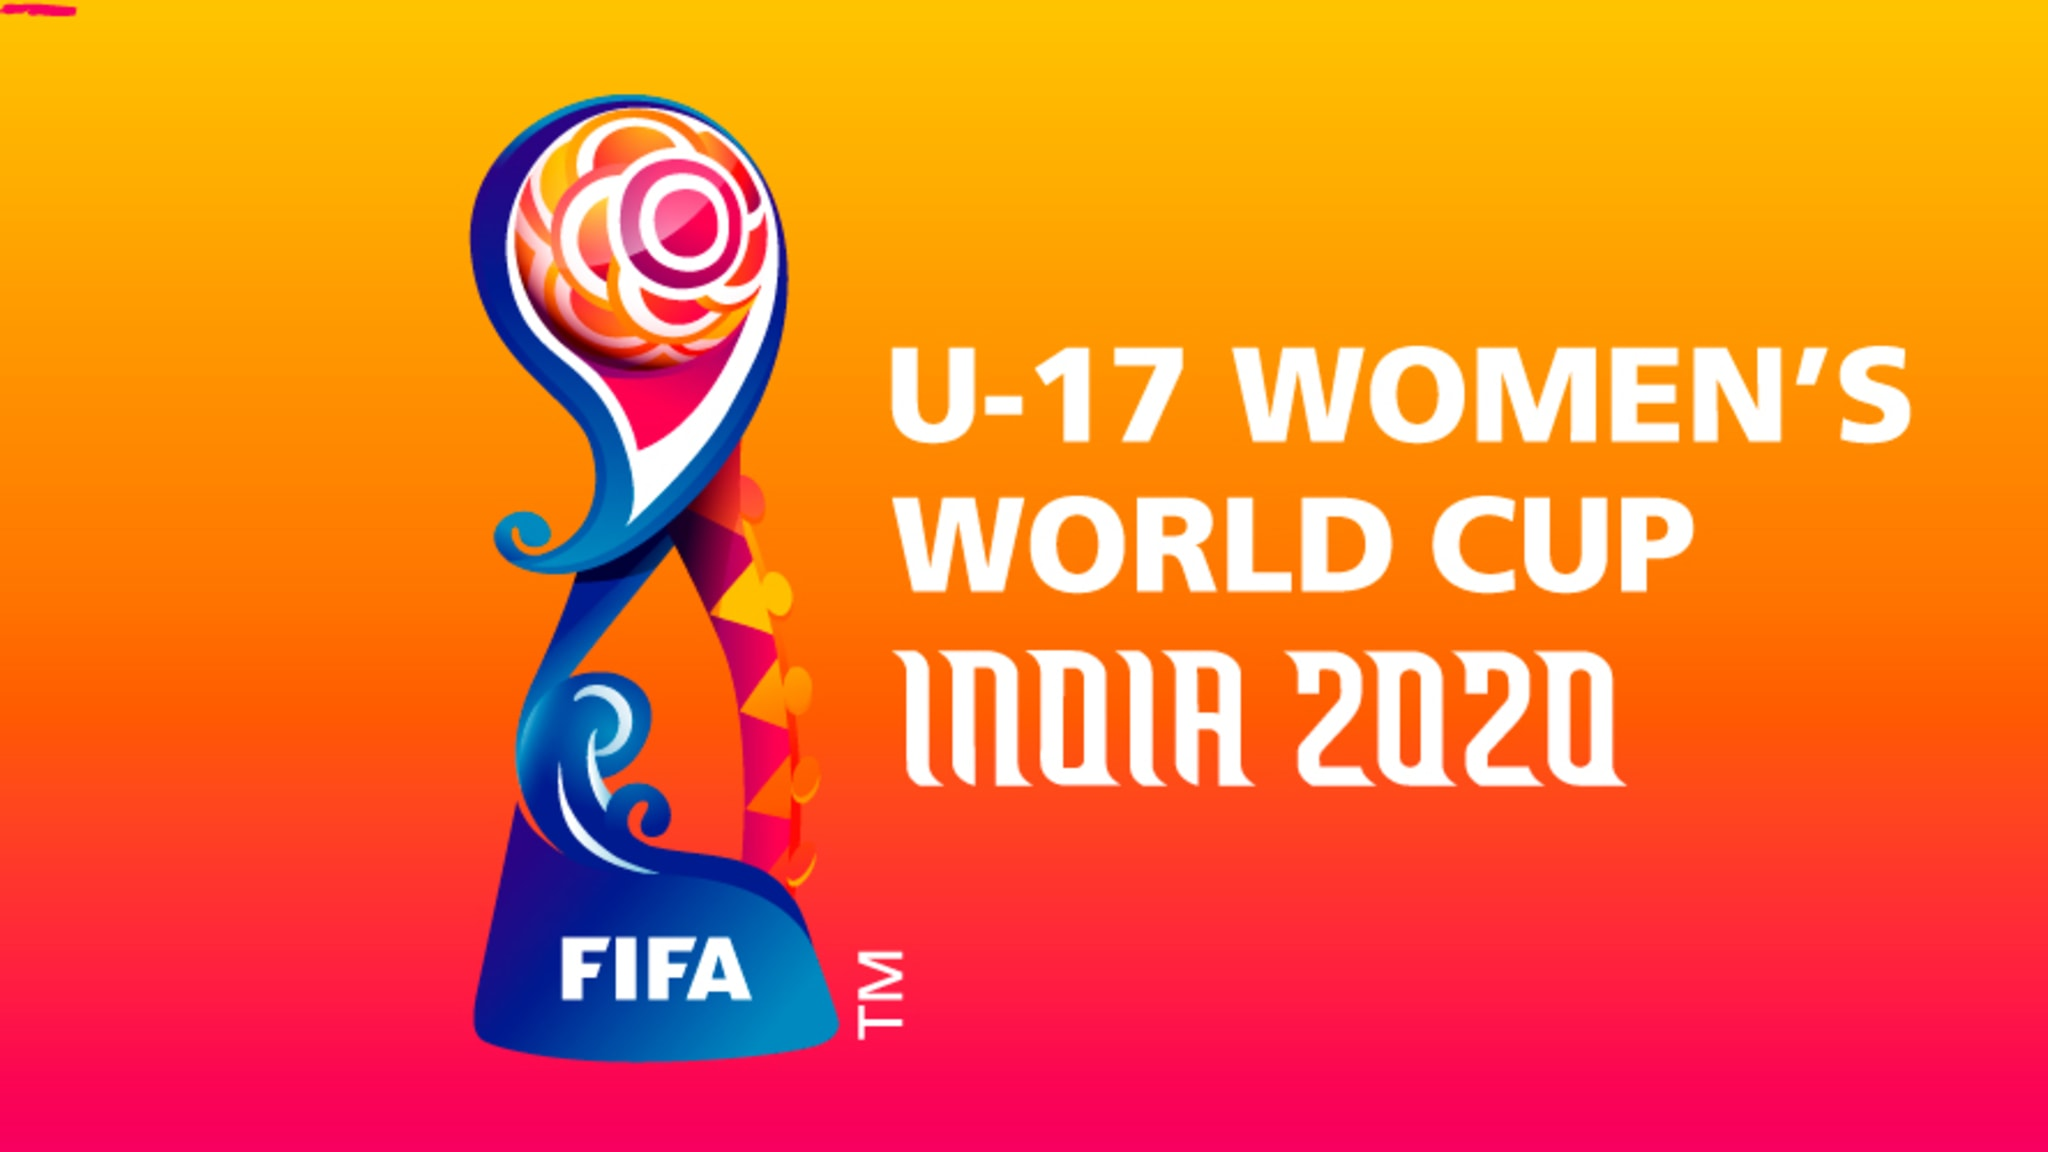 2021 U-17 Women's World Cup: UEFA cancels qualifiers; England, Germany and Spain book tickets to India